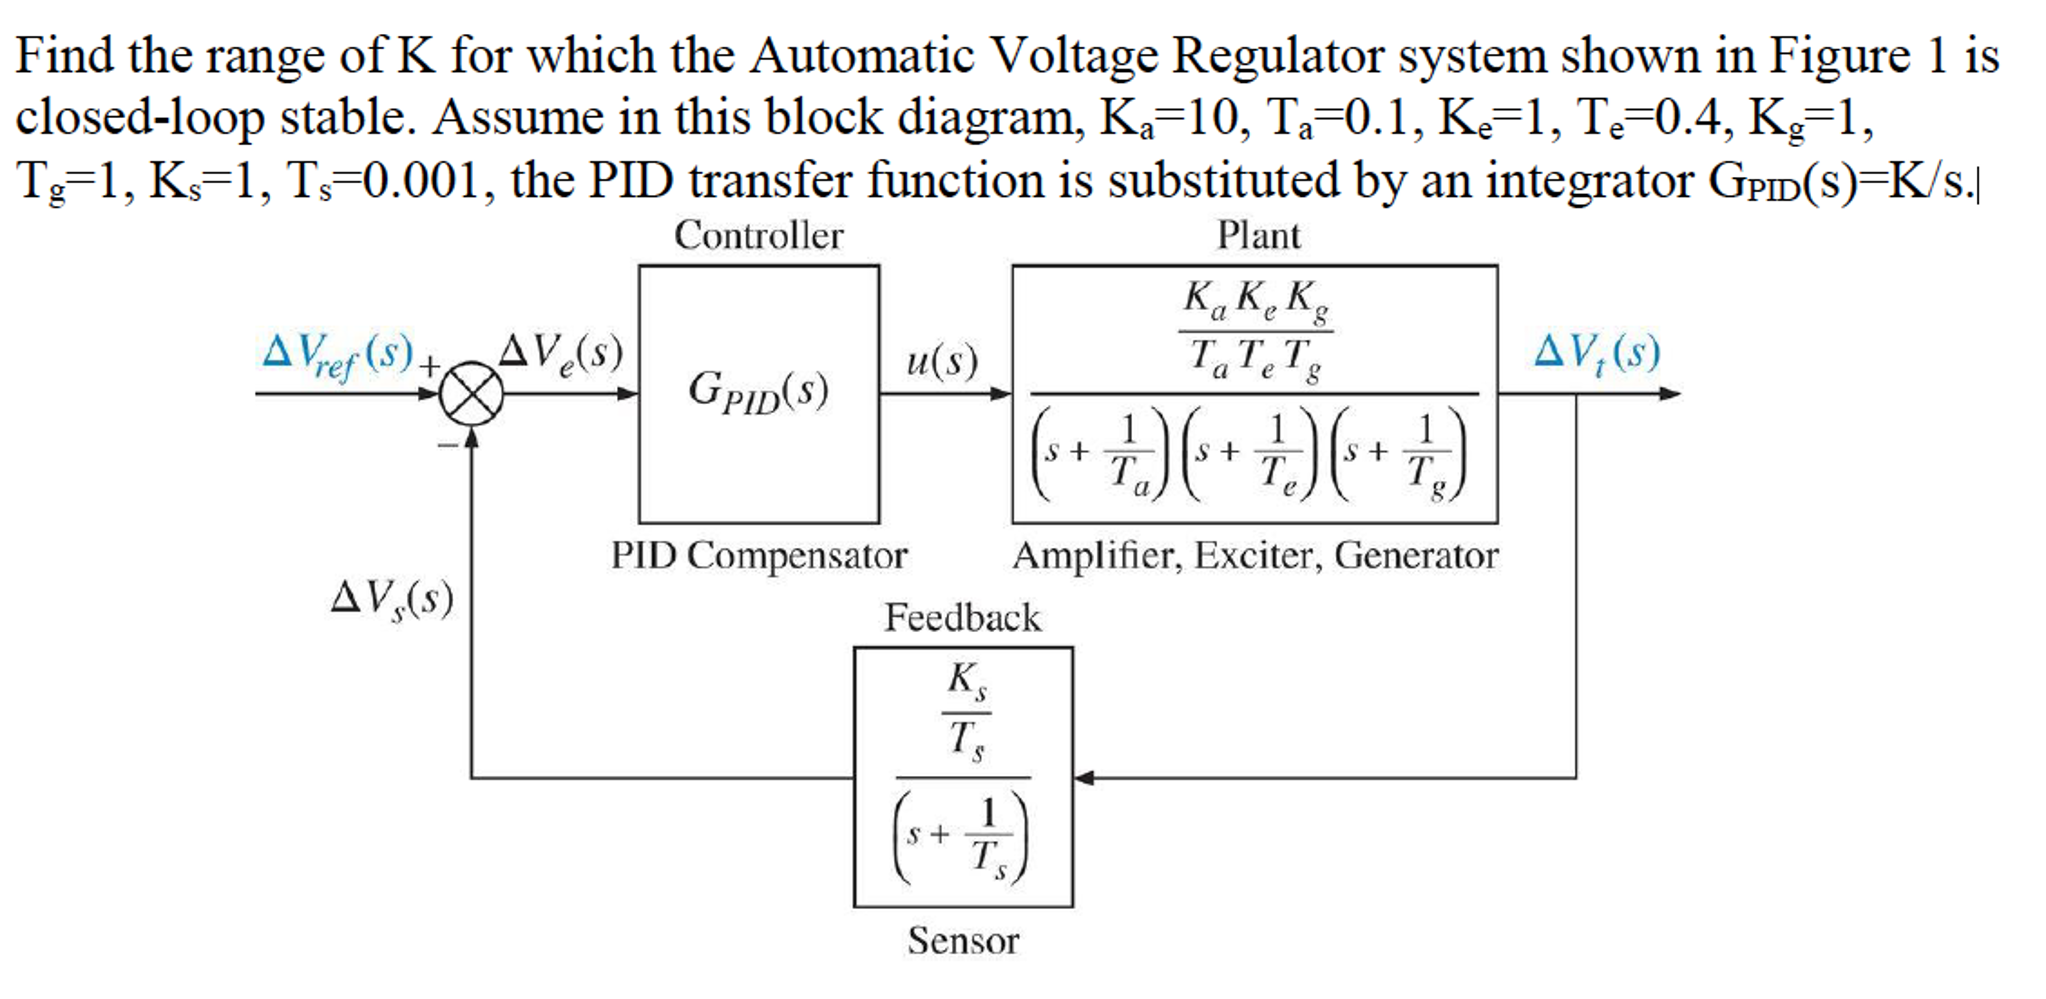 Find the range of K for which the Automatic Voltag